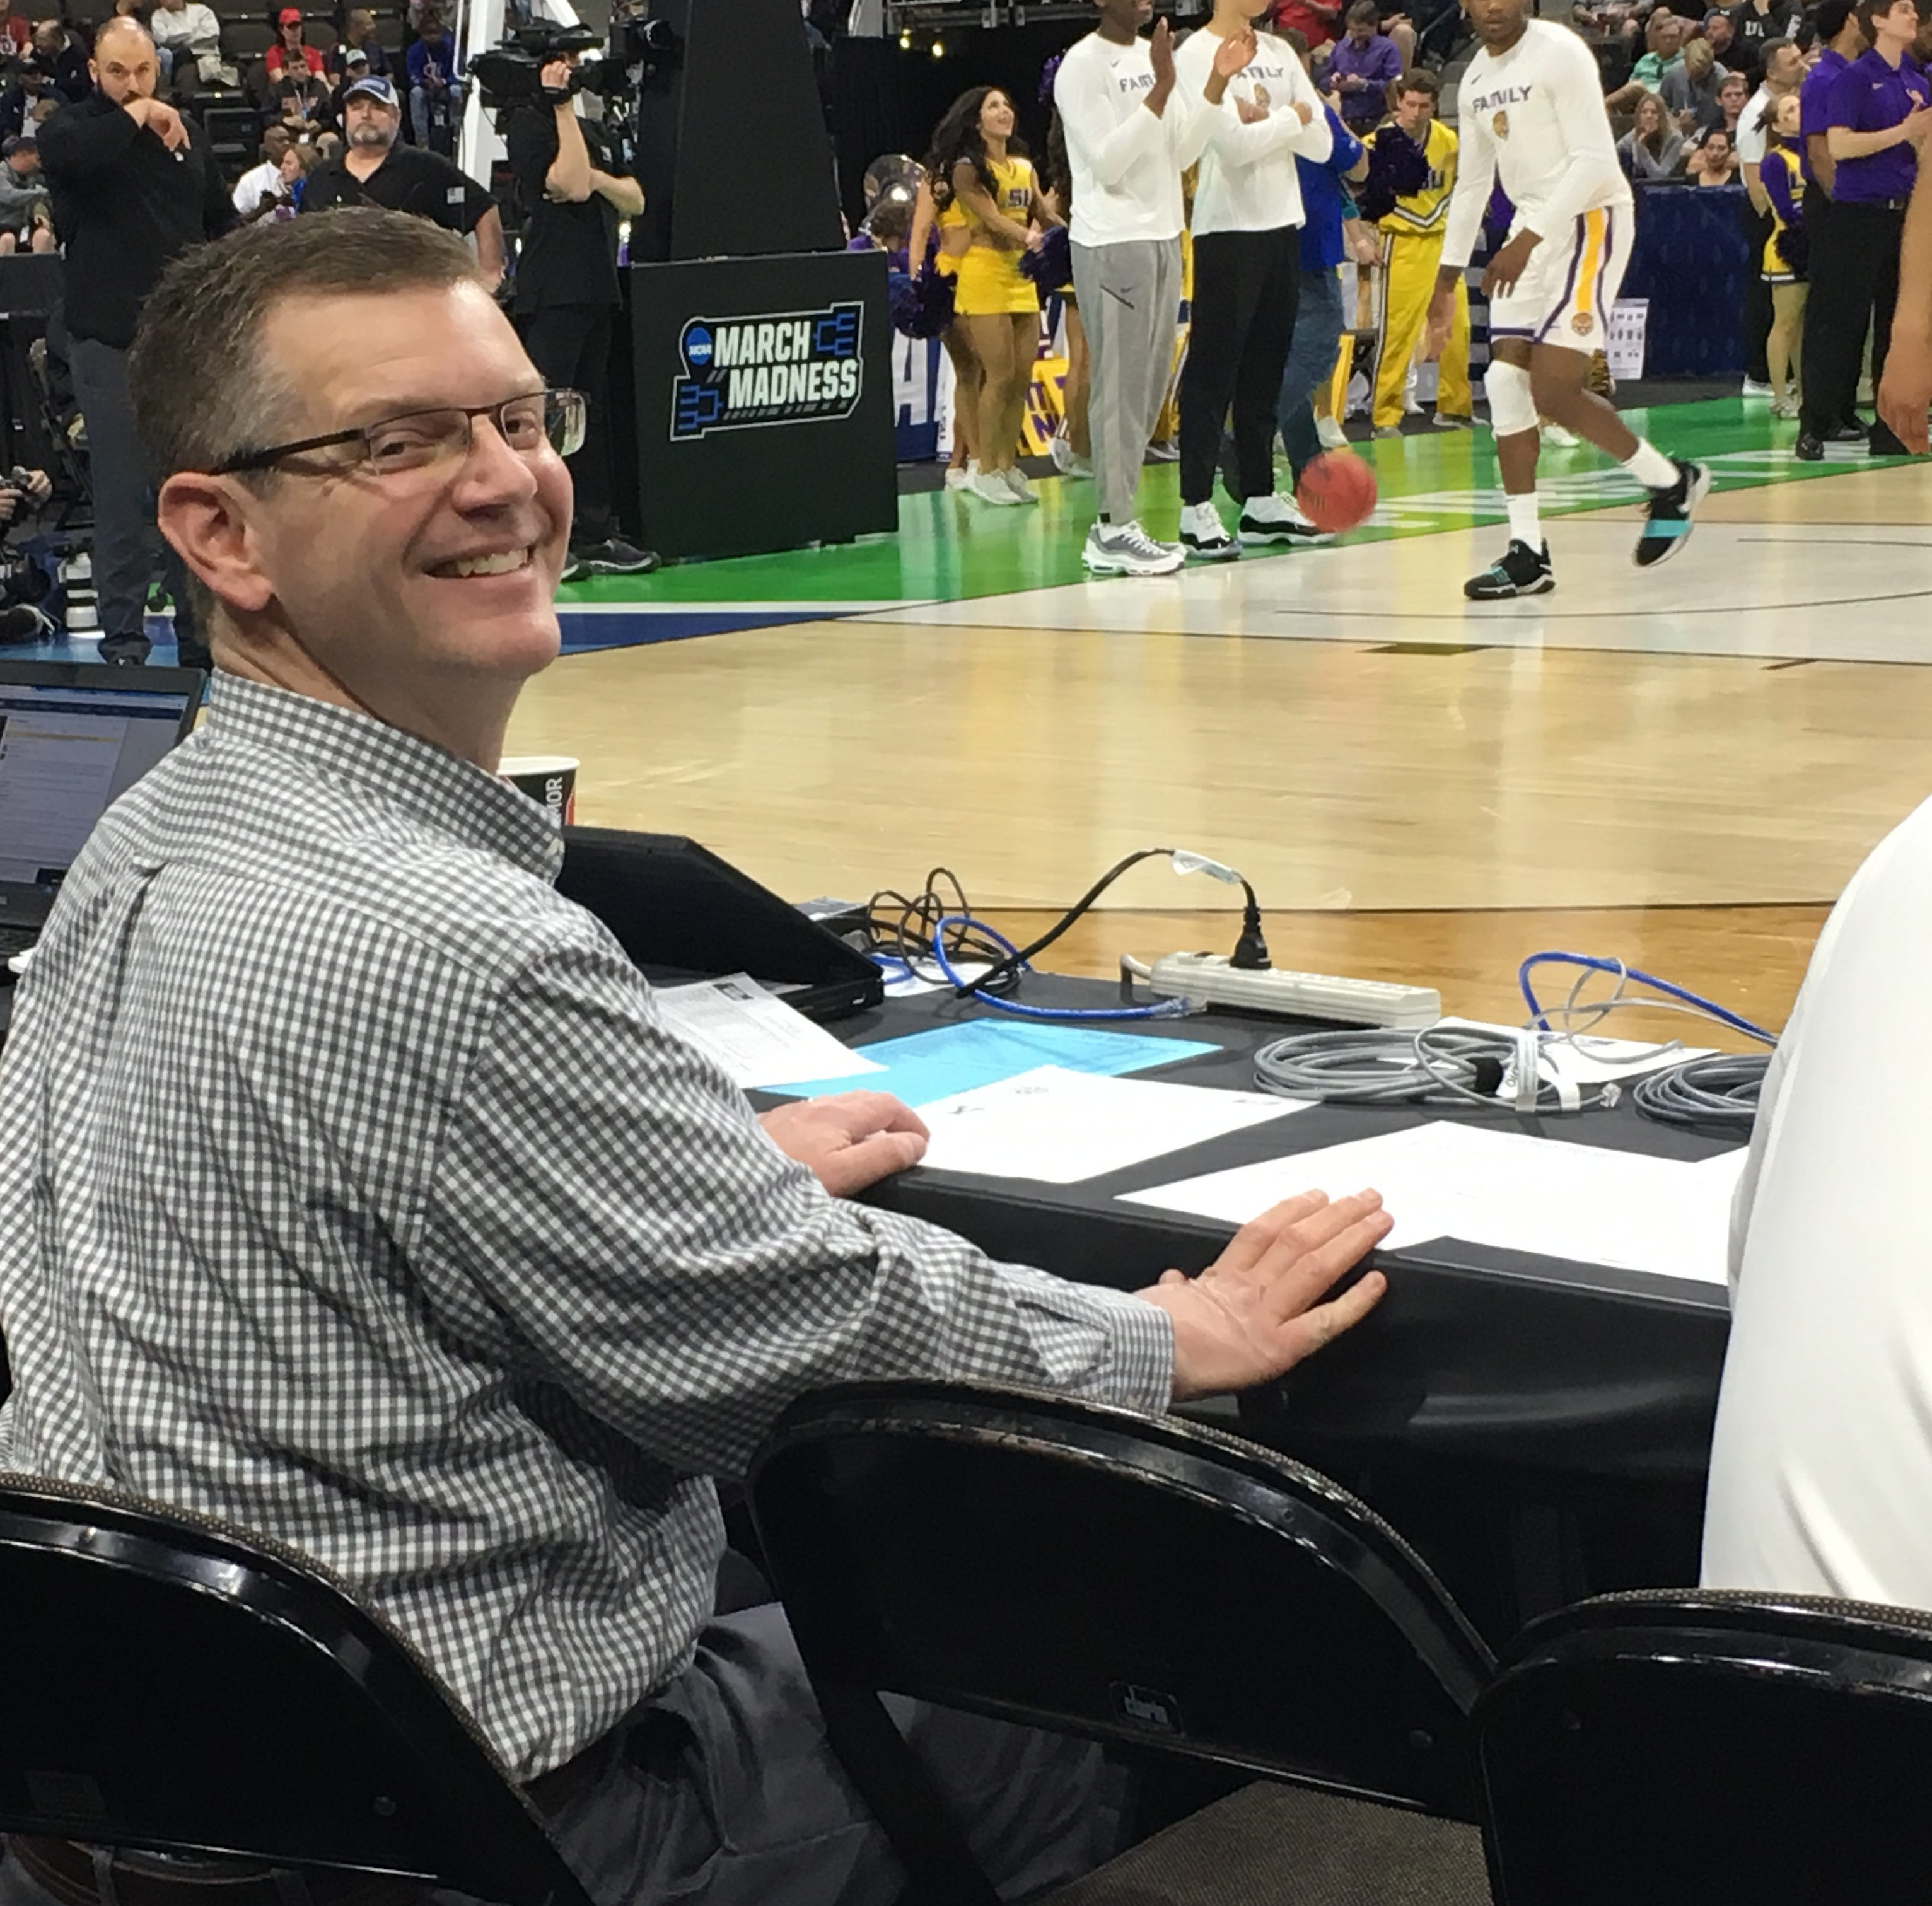 LSU player crashes into Belmont radio voice Kevin Ingram at NCAA Tournament on clear 'charge'